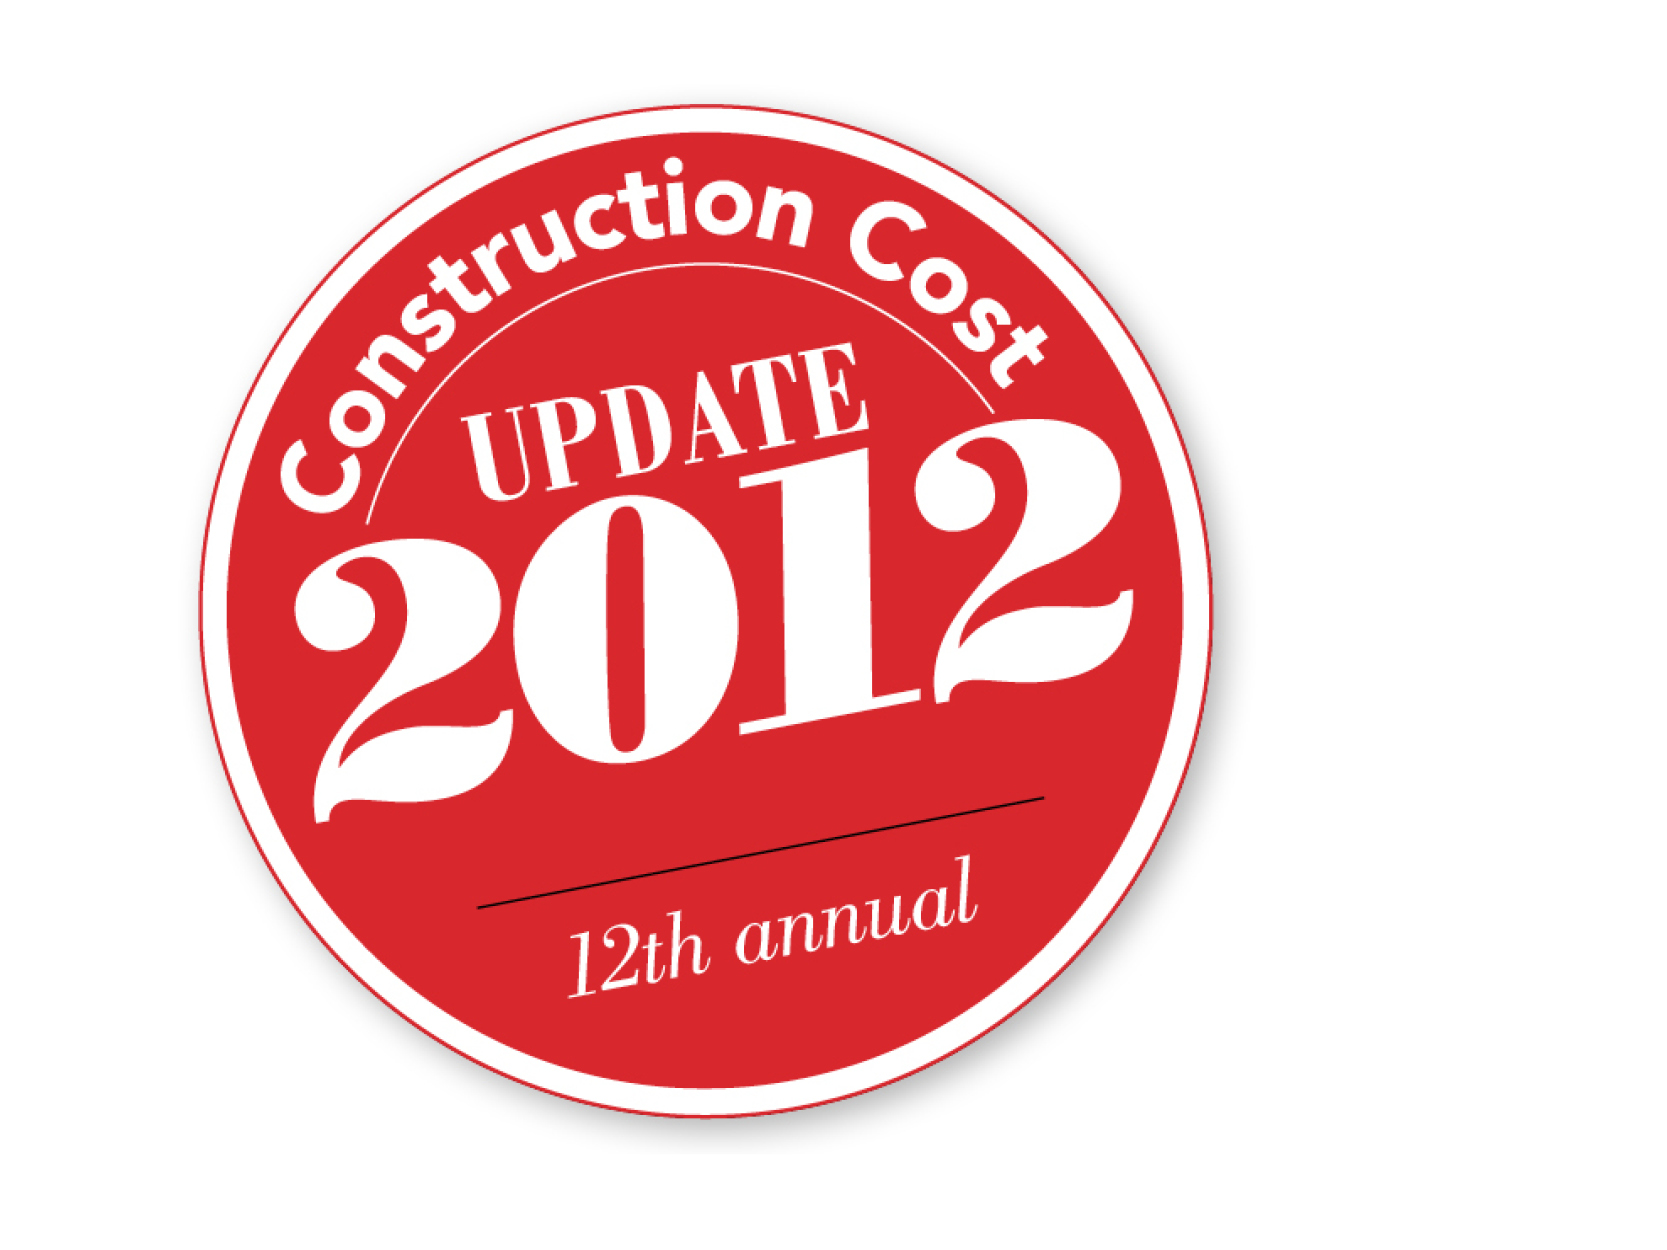 Preview of the resource library item for Kirksey Annual Construction Cost Update 2012